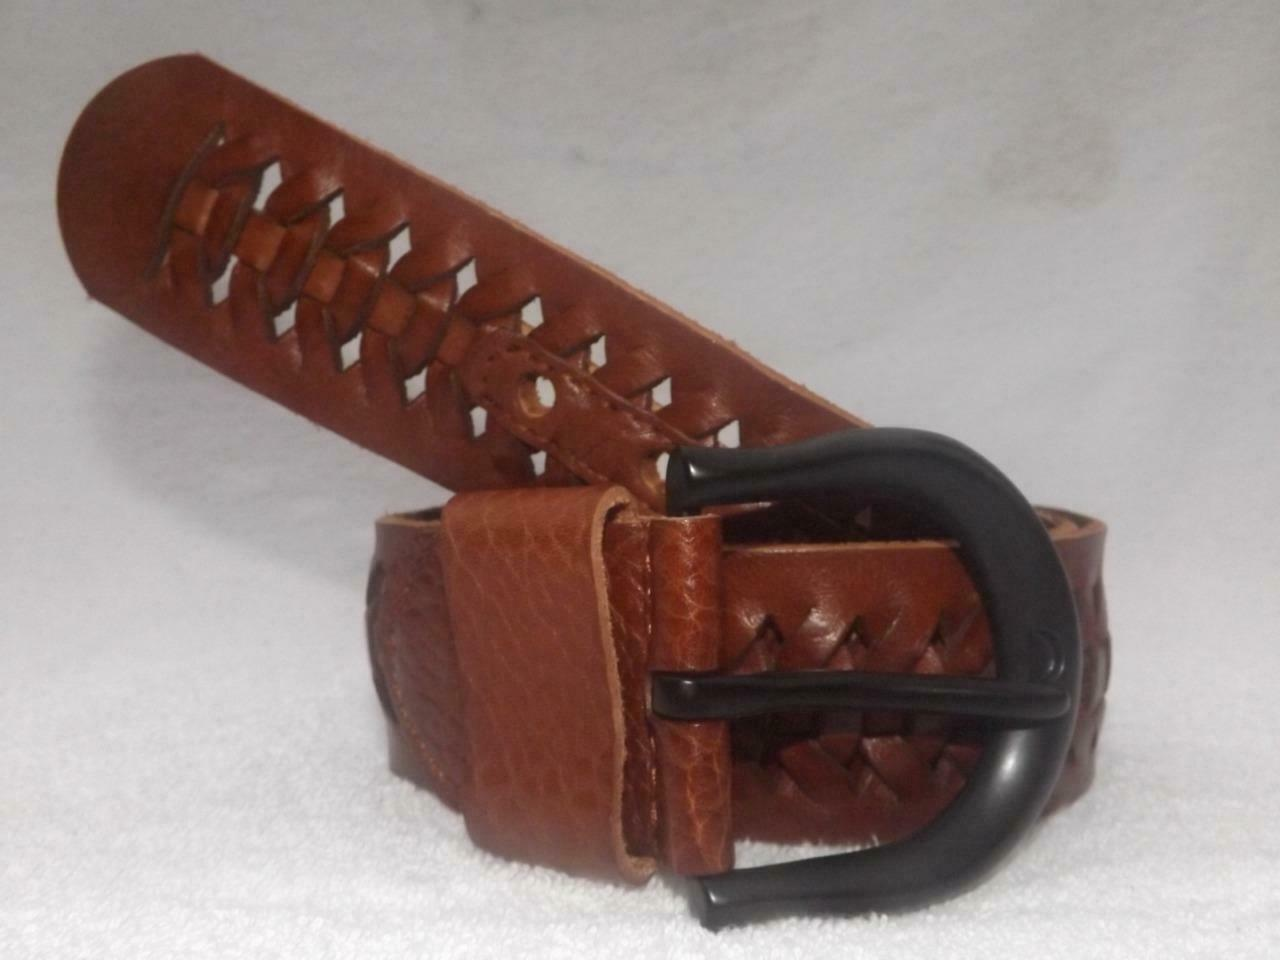 LAUREN BY RALPH LAUREN EQUESTRIAN BRAIDED 100% LEATHER BELT BROWN SZ L NWT $64